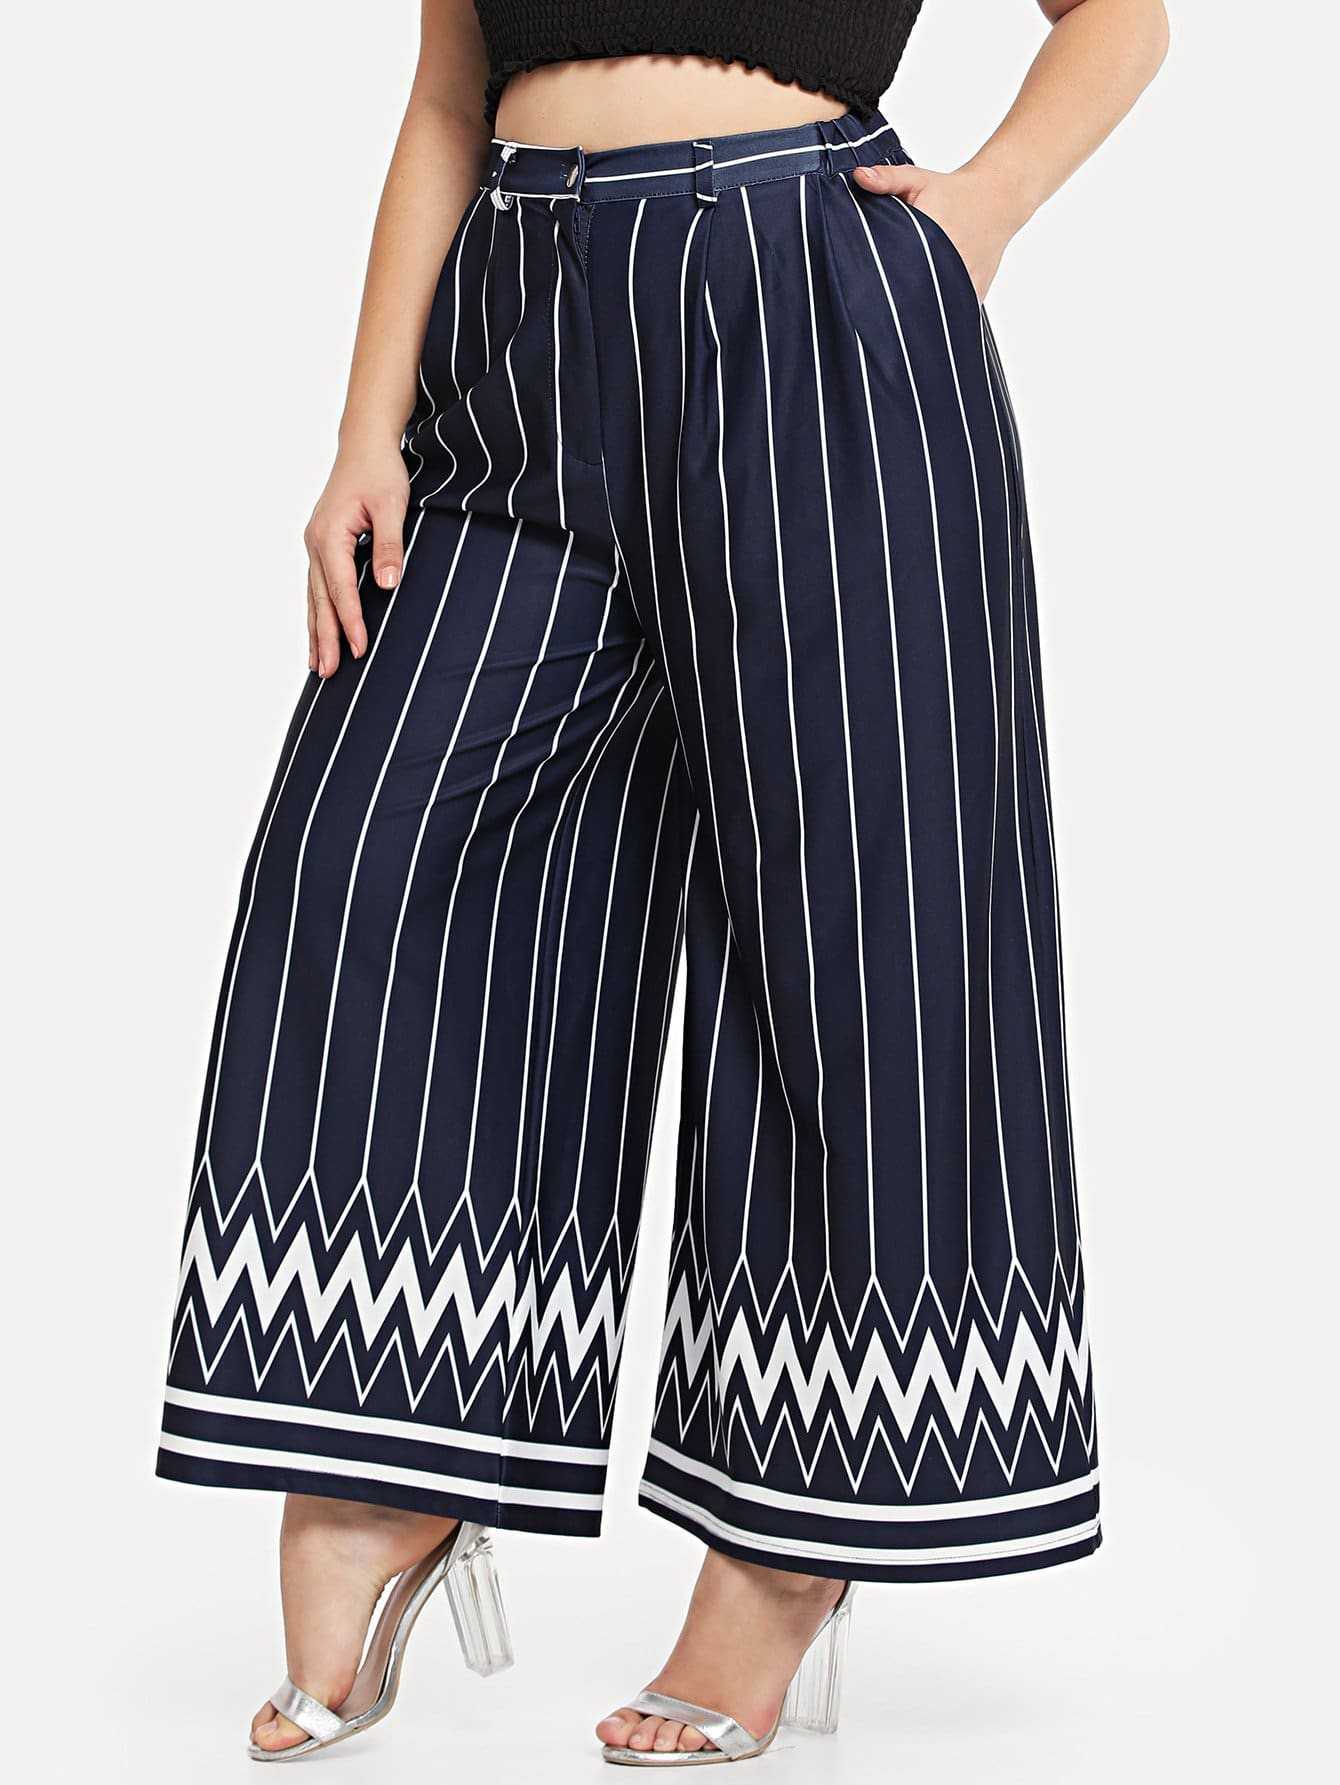 Striped & Chevron Print Wide Leg Pants все цены